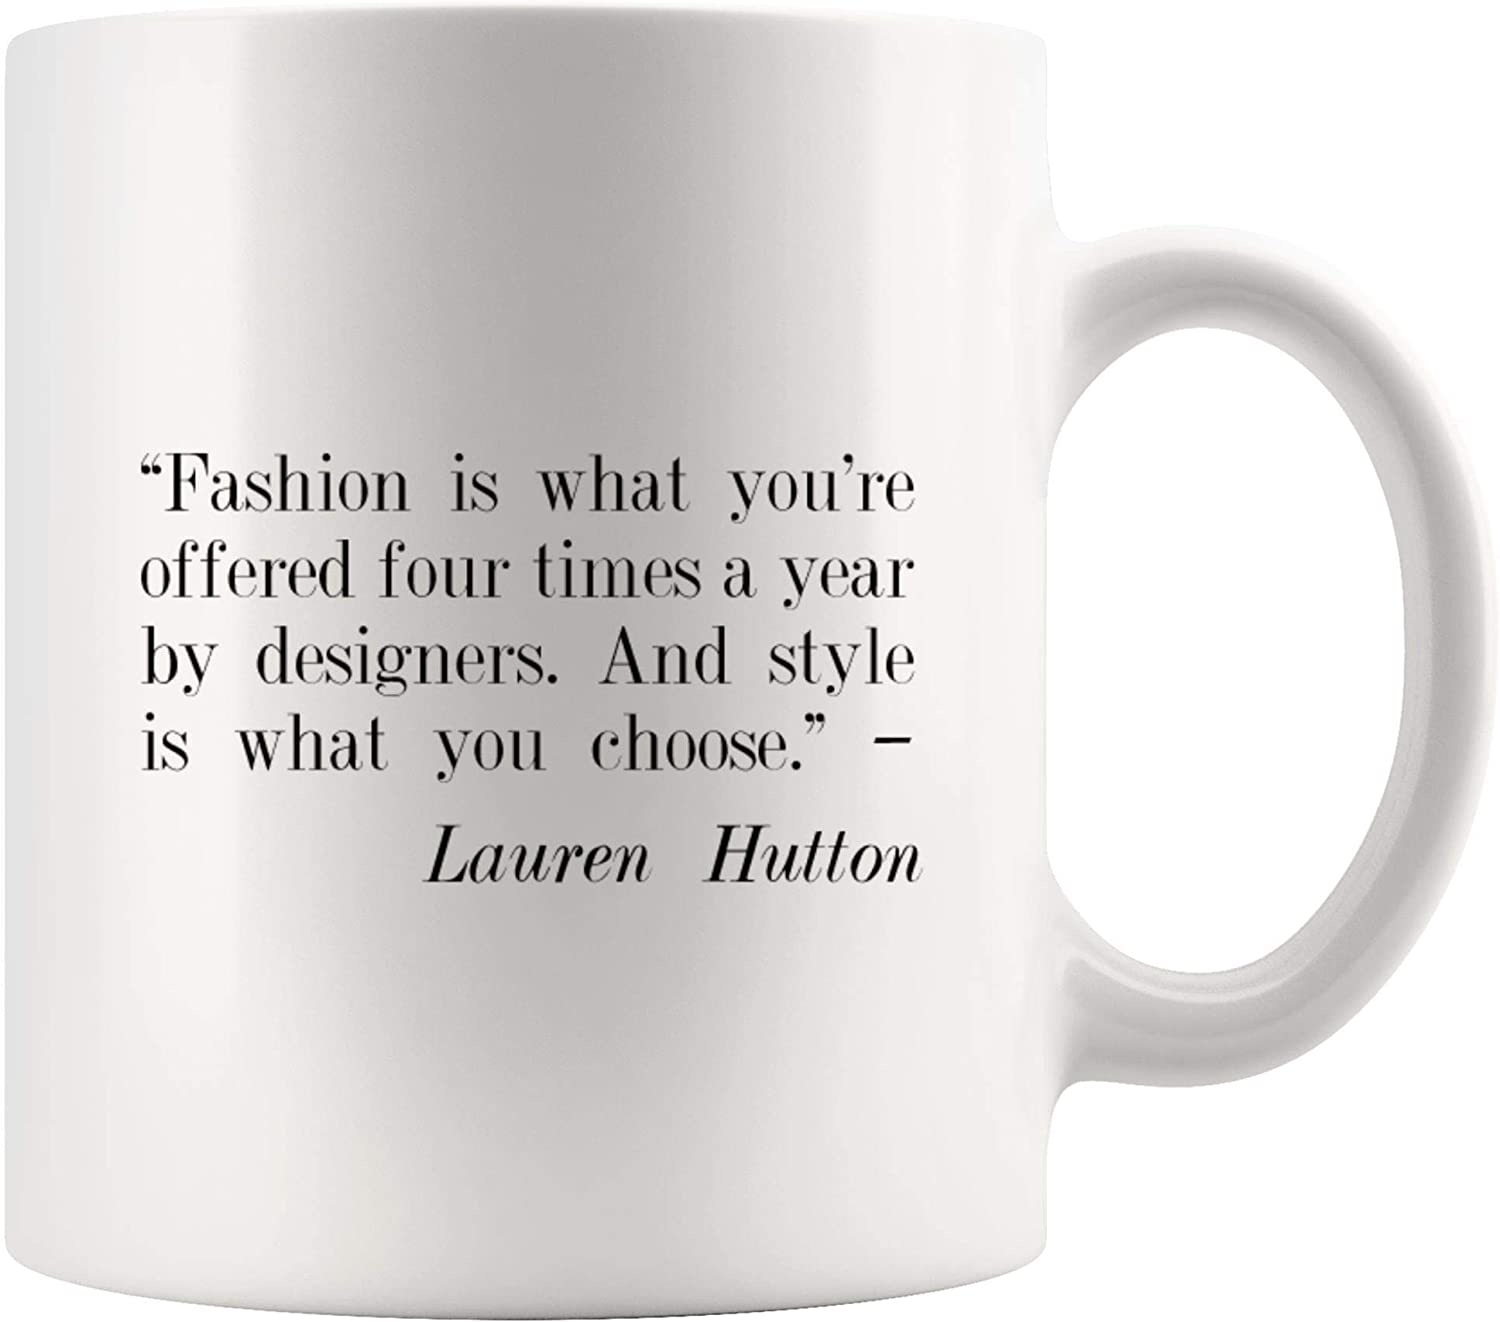 Amazon Com Fashion By Designers Style What Choose Inspirational Coffee Mug Motivational Tea Mugs Work Motivation Motivate Inspired Inspire Cafe Beer Cup Funny Quotes Gratitude Office Men Women Kids Gift Kitchen